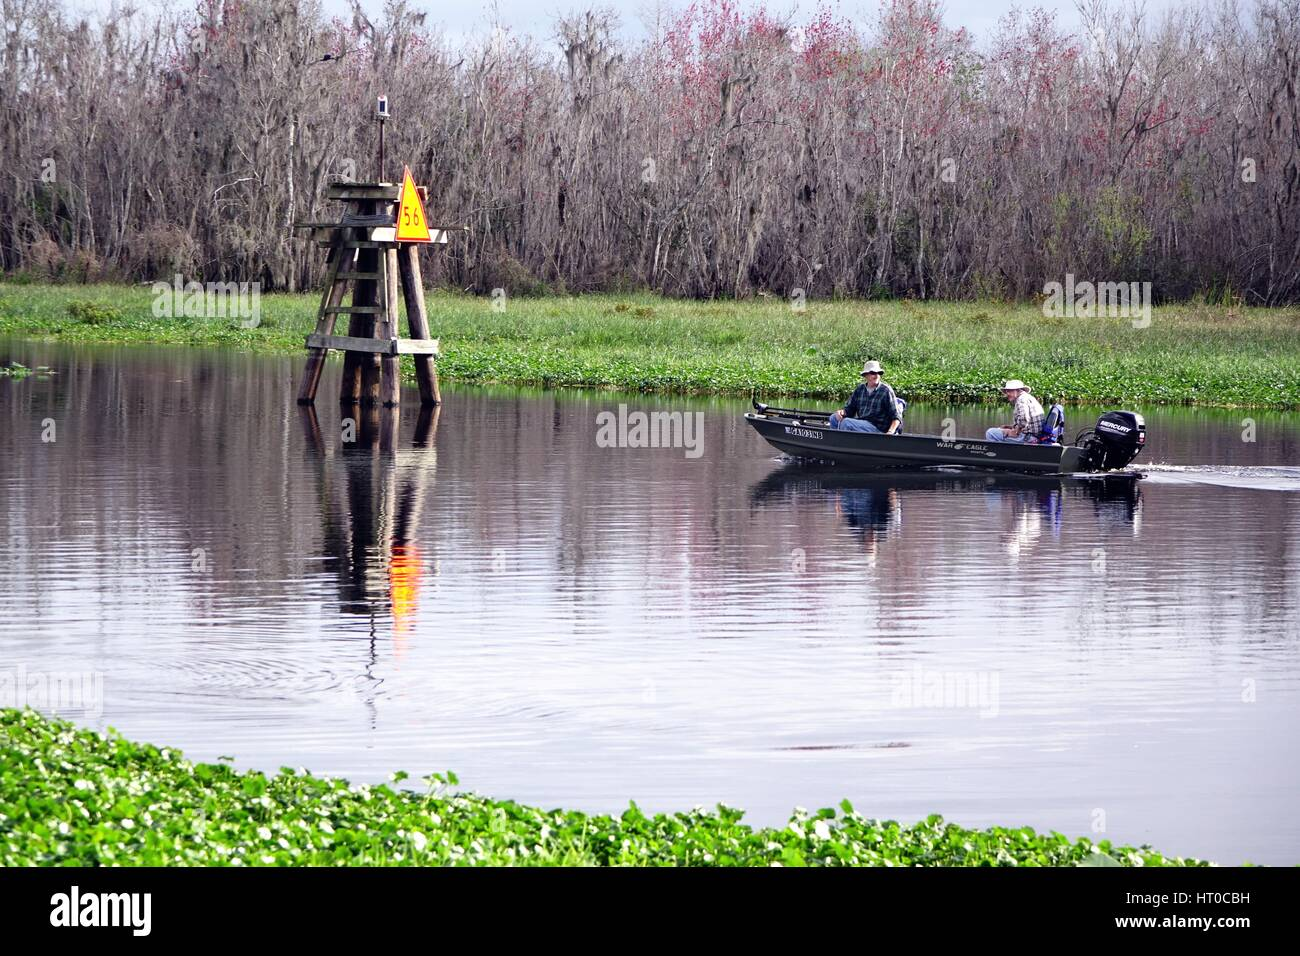 Fishermen on the St. Johns River in an aluminum boat, War Eagle. - Stock Image